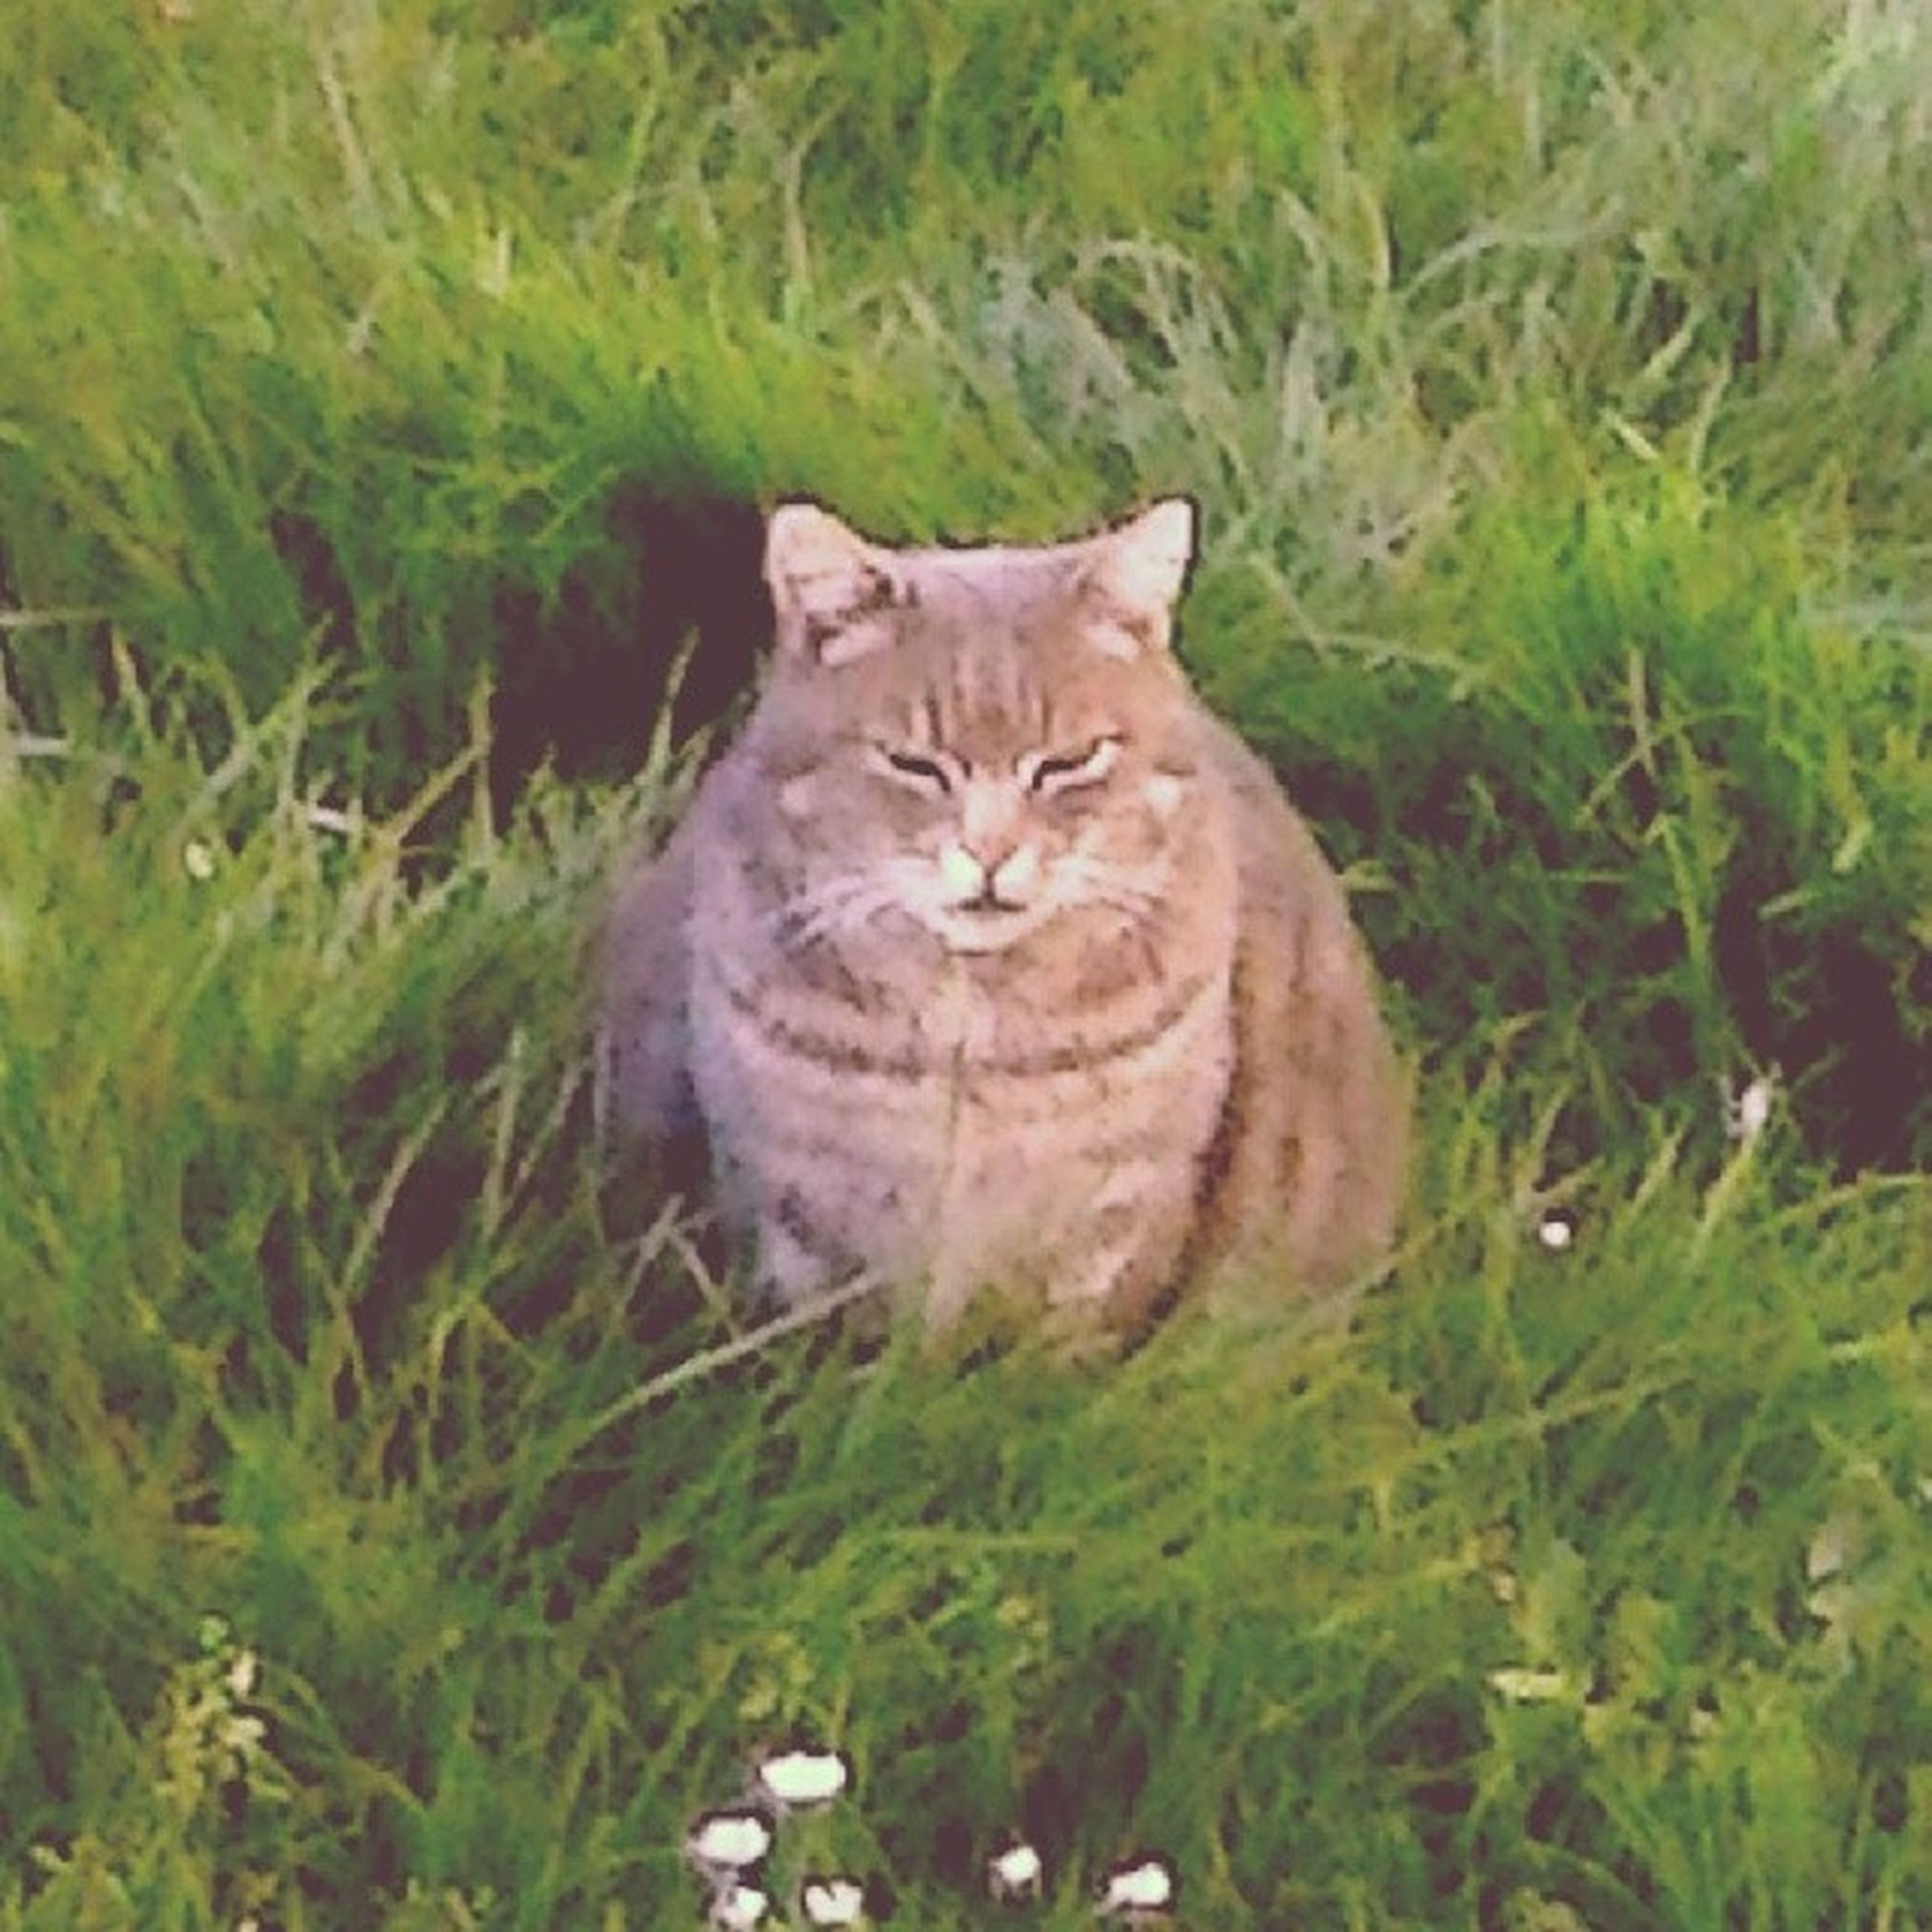 domestic cat, domestic animals, cat, pets, mammal, feline, grass, animal themes, one animal, whisker, looking at camera, field, portrait, grassy, green color, plant, growth, relaxation, staring, nature